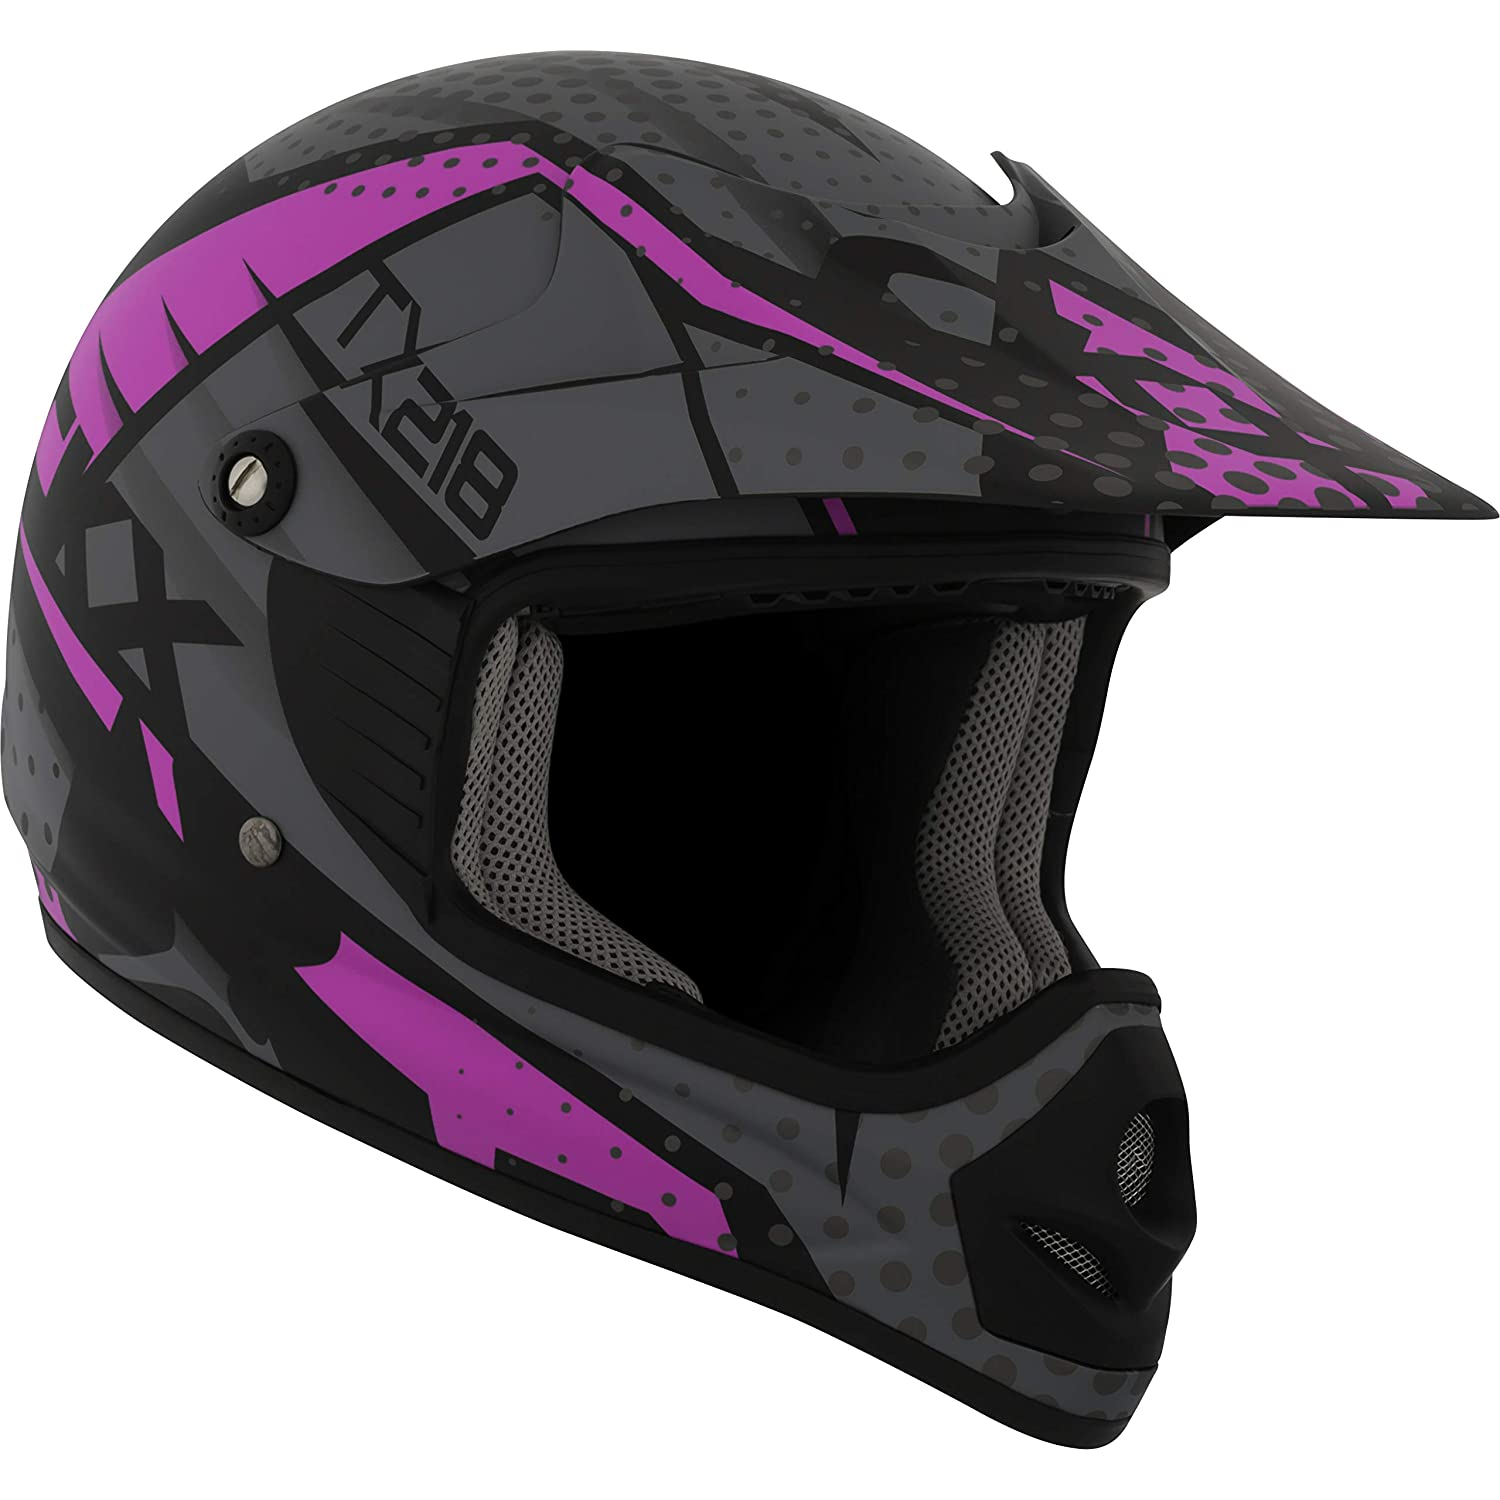 CKX Unisex-Child's Off Road Zuma TX218Y Helmet (Youth) (Matte Pink, Small) 509492